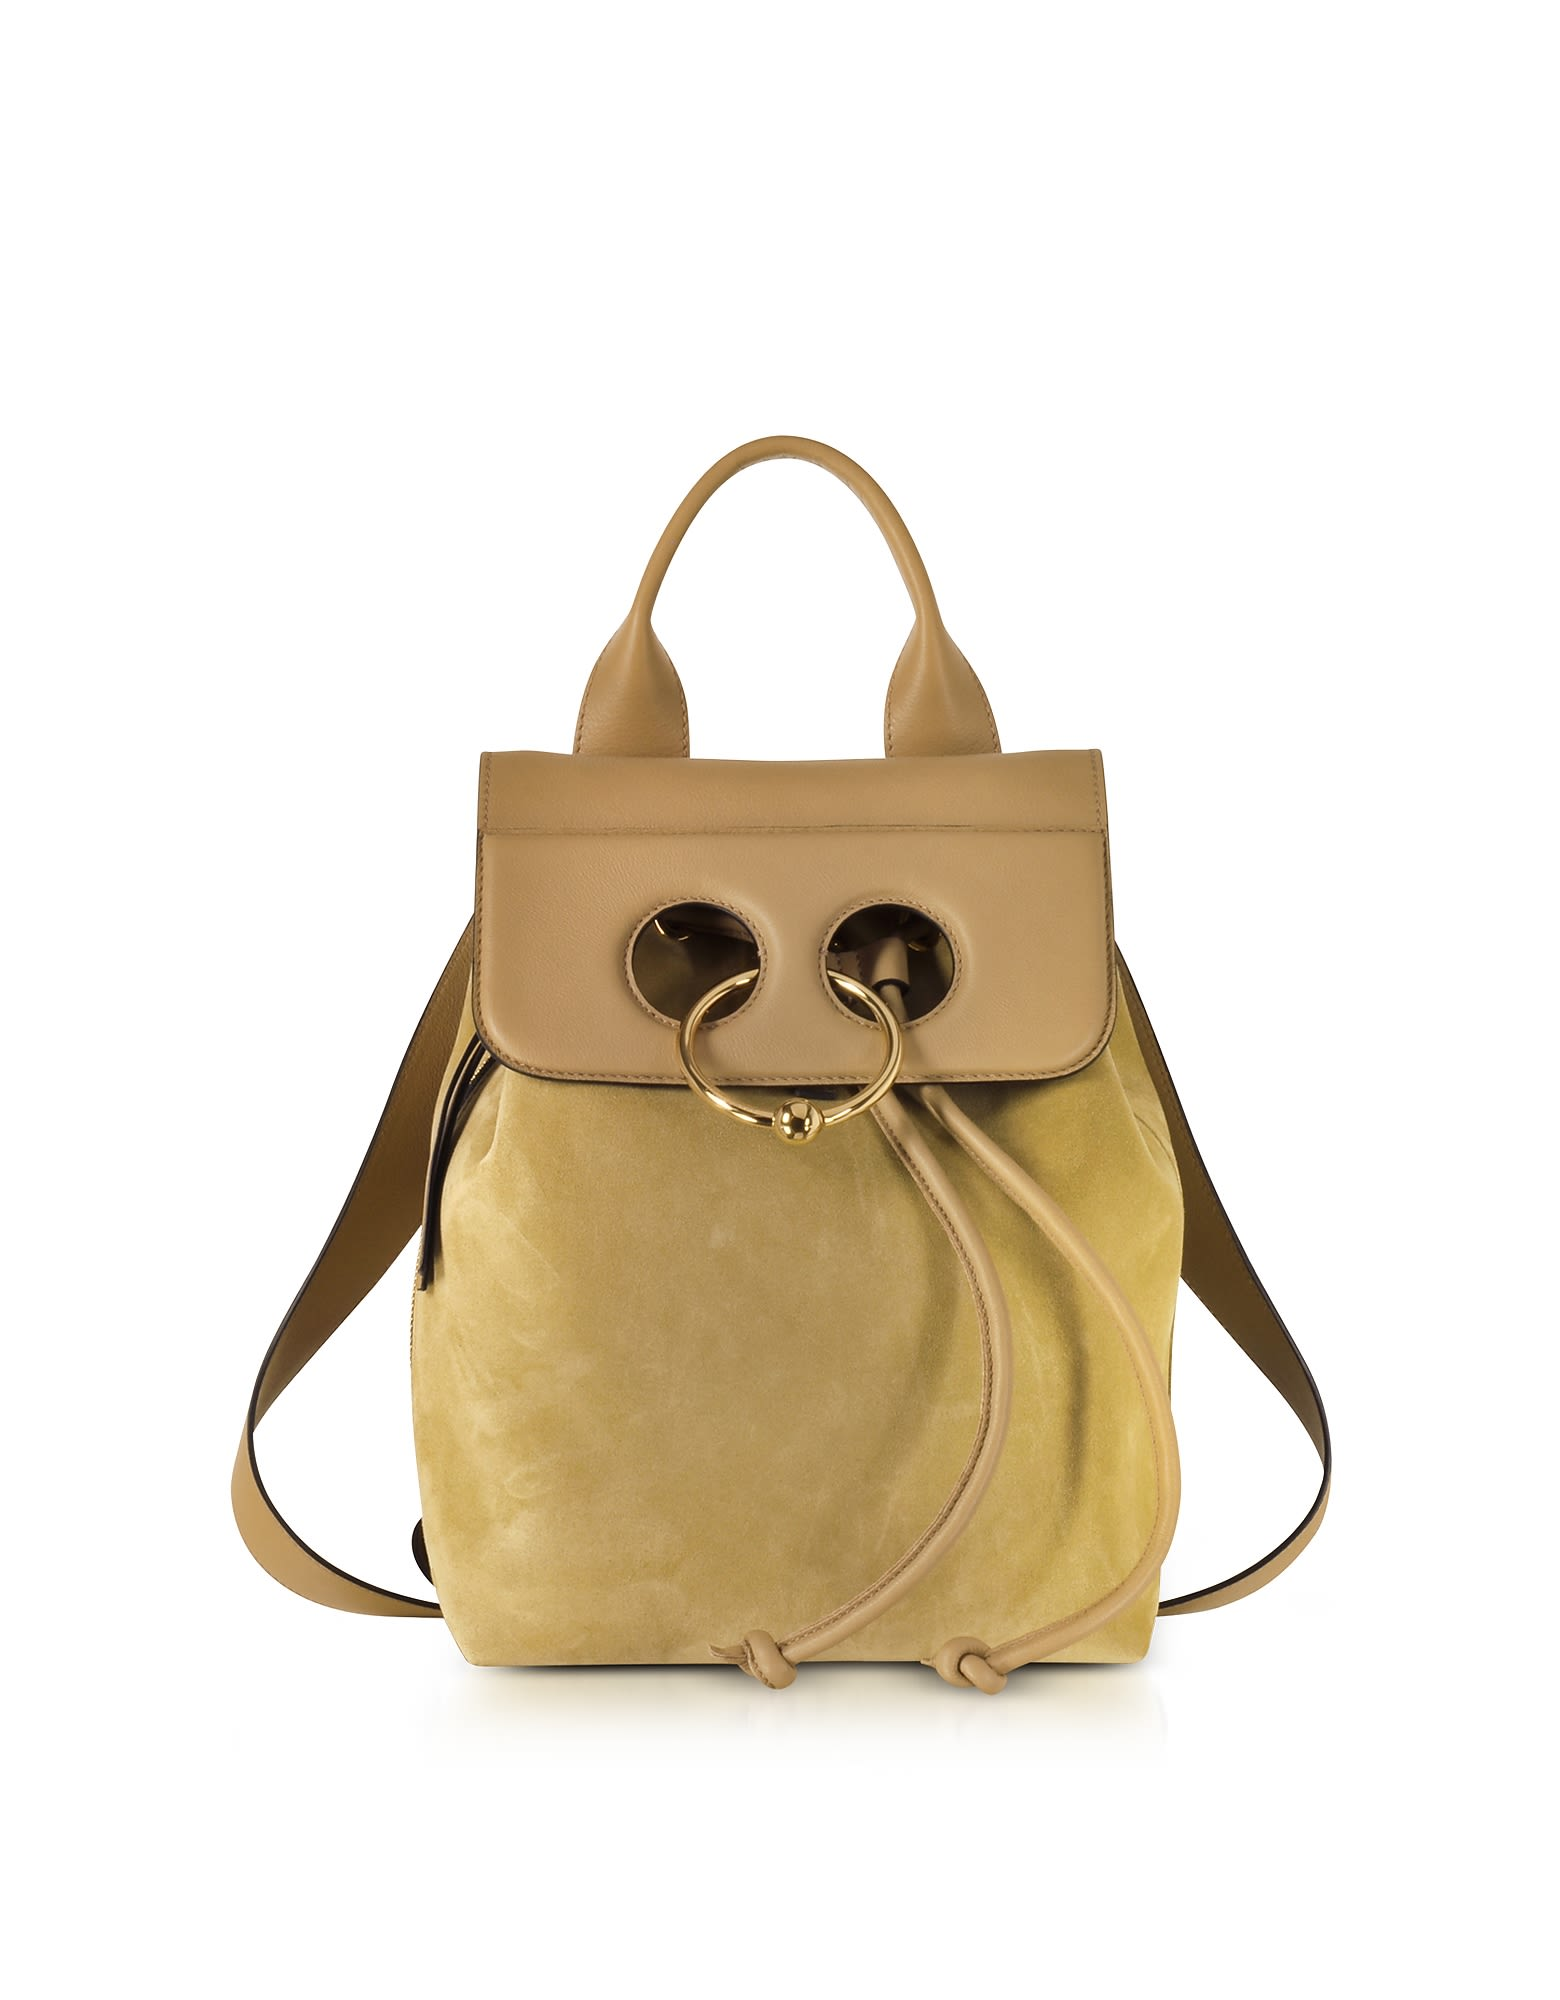 J.W.ANDERSON JW ANDERSON GOLD SUEDE AND LEATHER MINI PIERCE BACKPACK